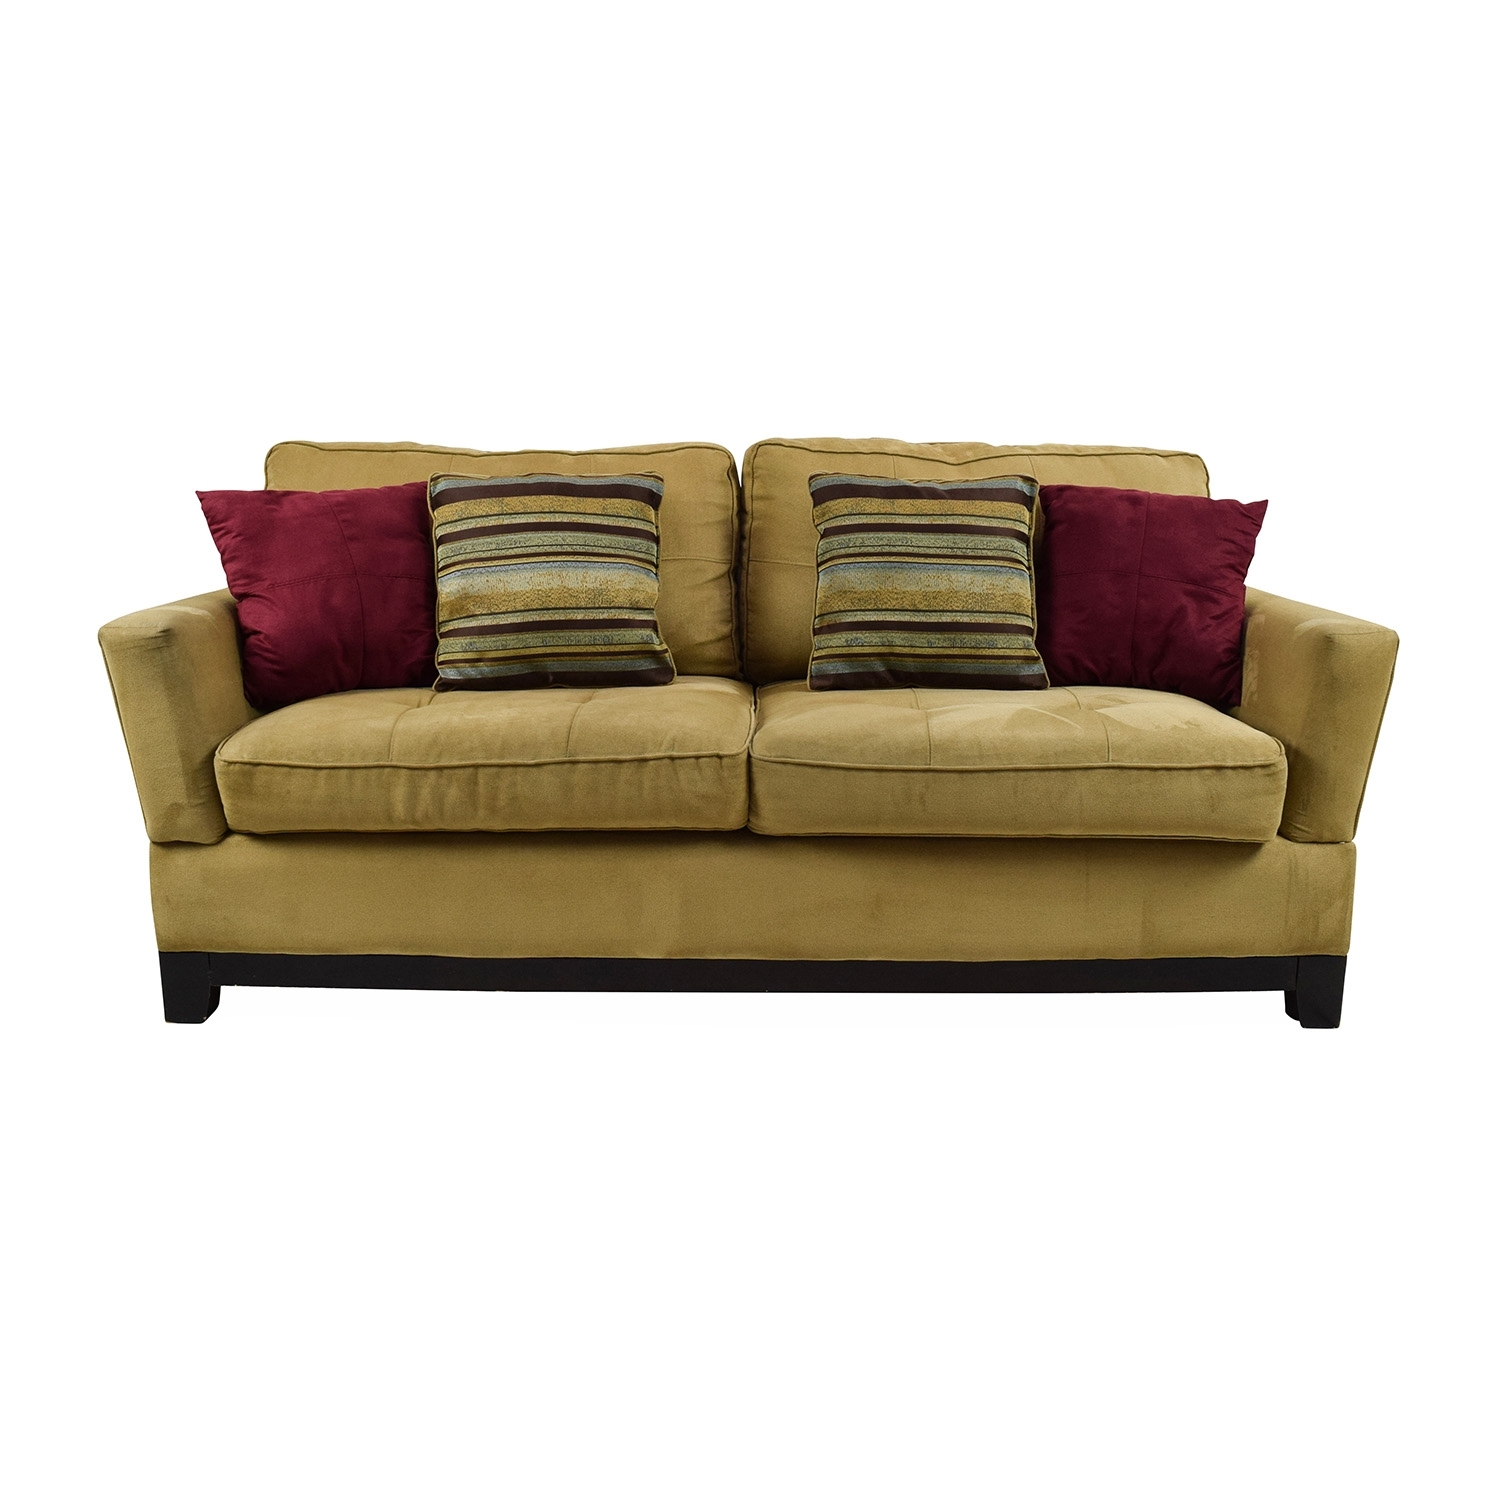 78% Off   Jennifer Convertibles Jennifer Convertibles Tan Sofa / Sofas Inside Jennifer Convertibles Sectional Sofas (Photo 8 of 10)